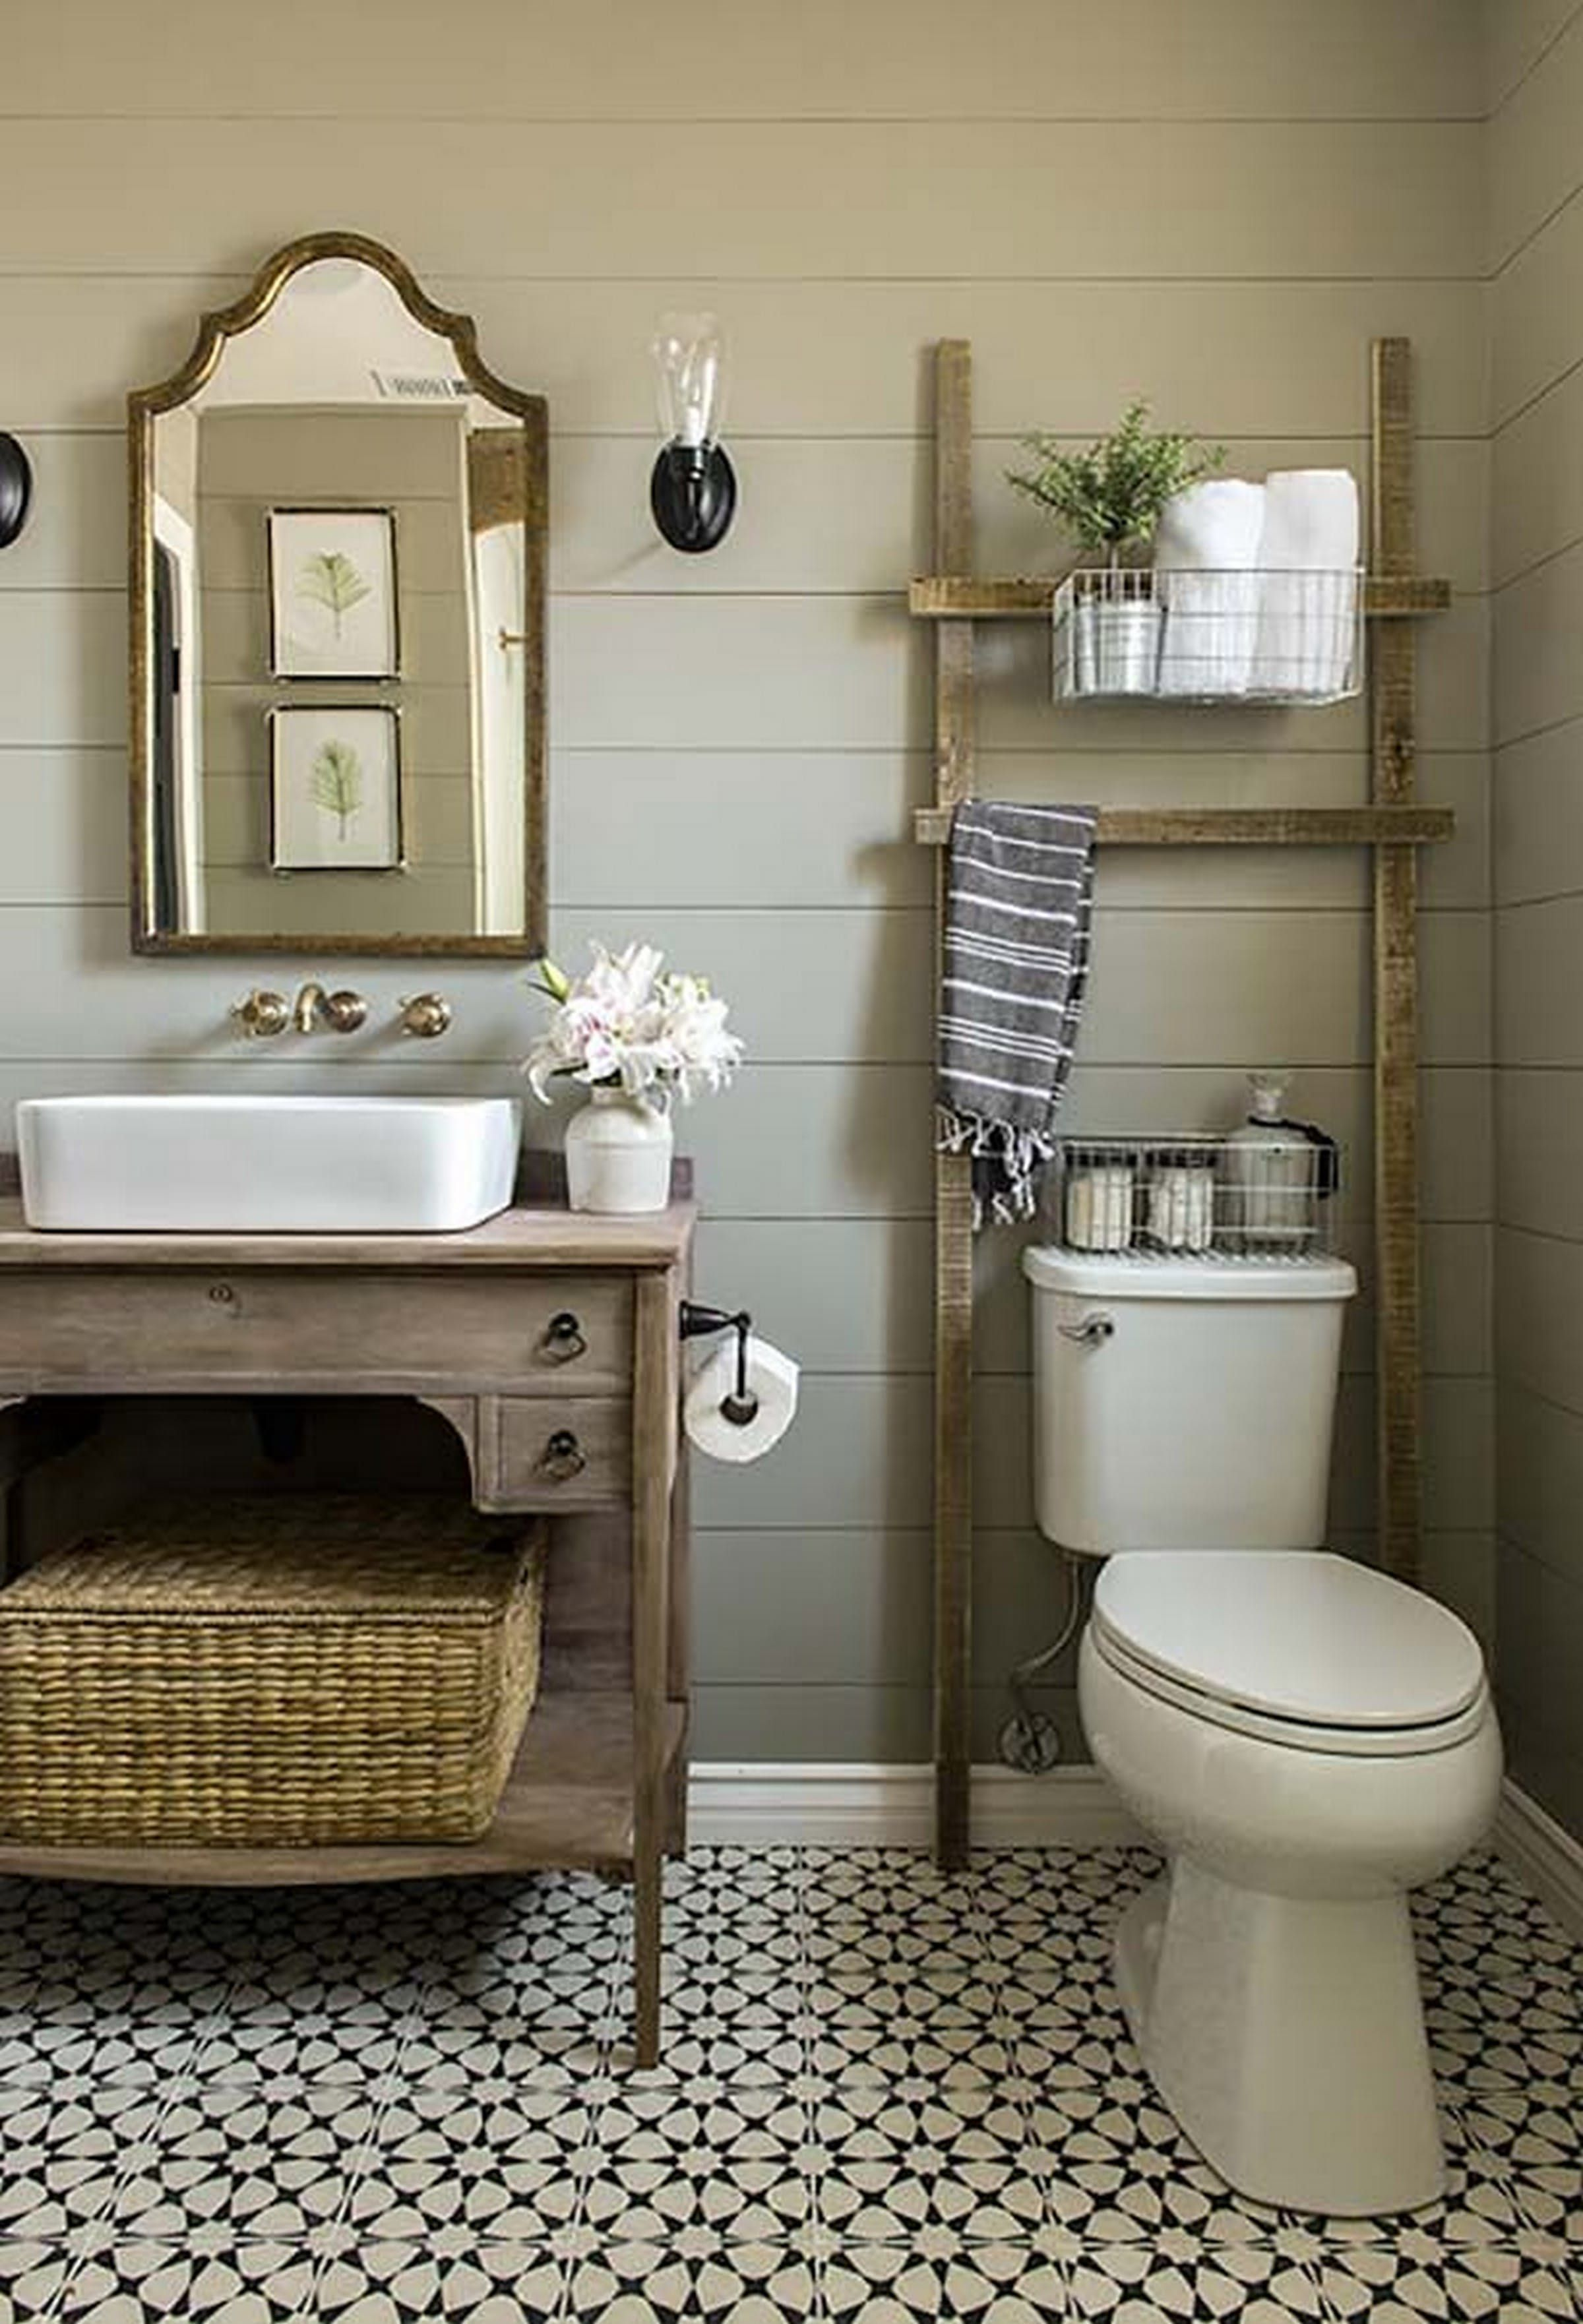 corner idea surprising design cabinet projects cabinets home ideas for of interior pretentious stylish best vanity bathroom